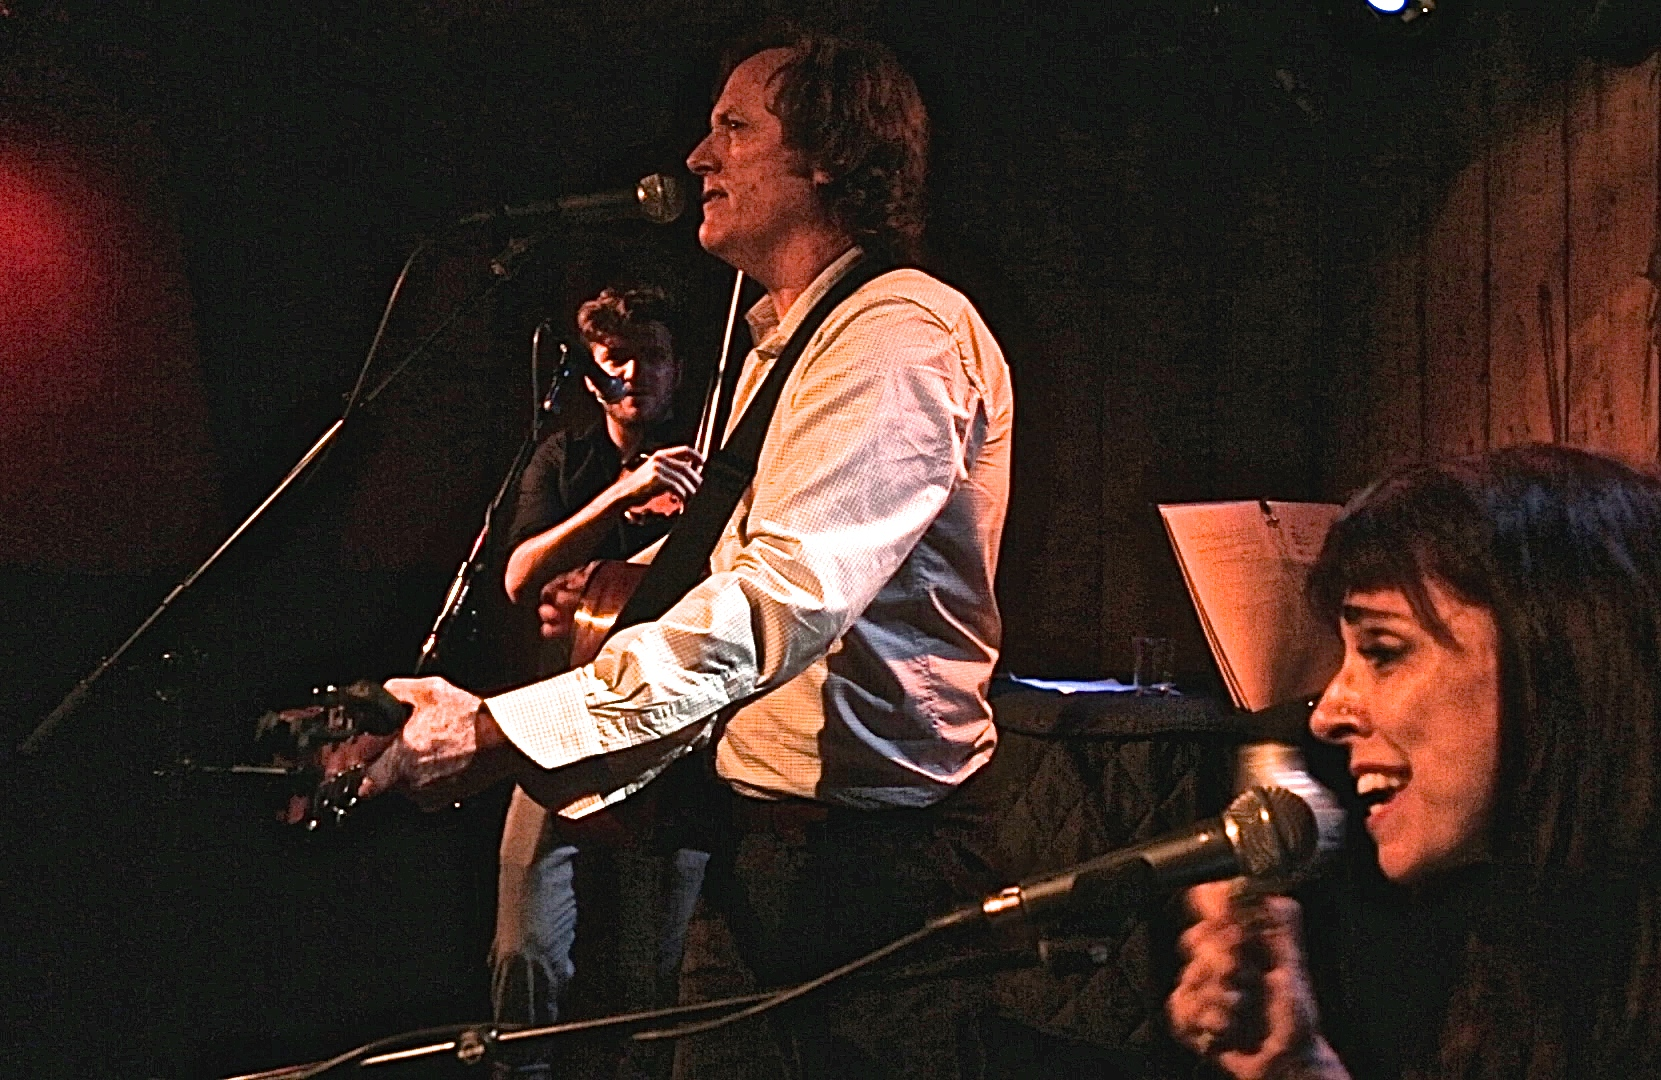 Live at Rockwood Music Hall, Stage 3, NYC